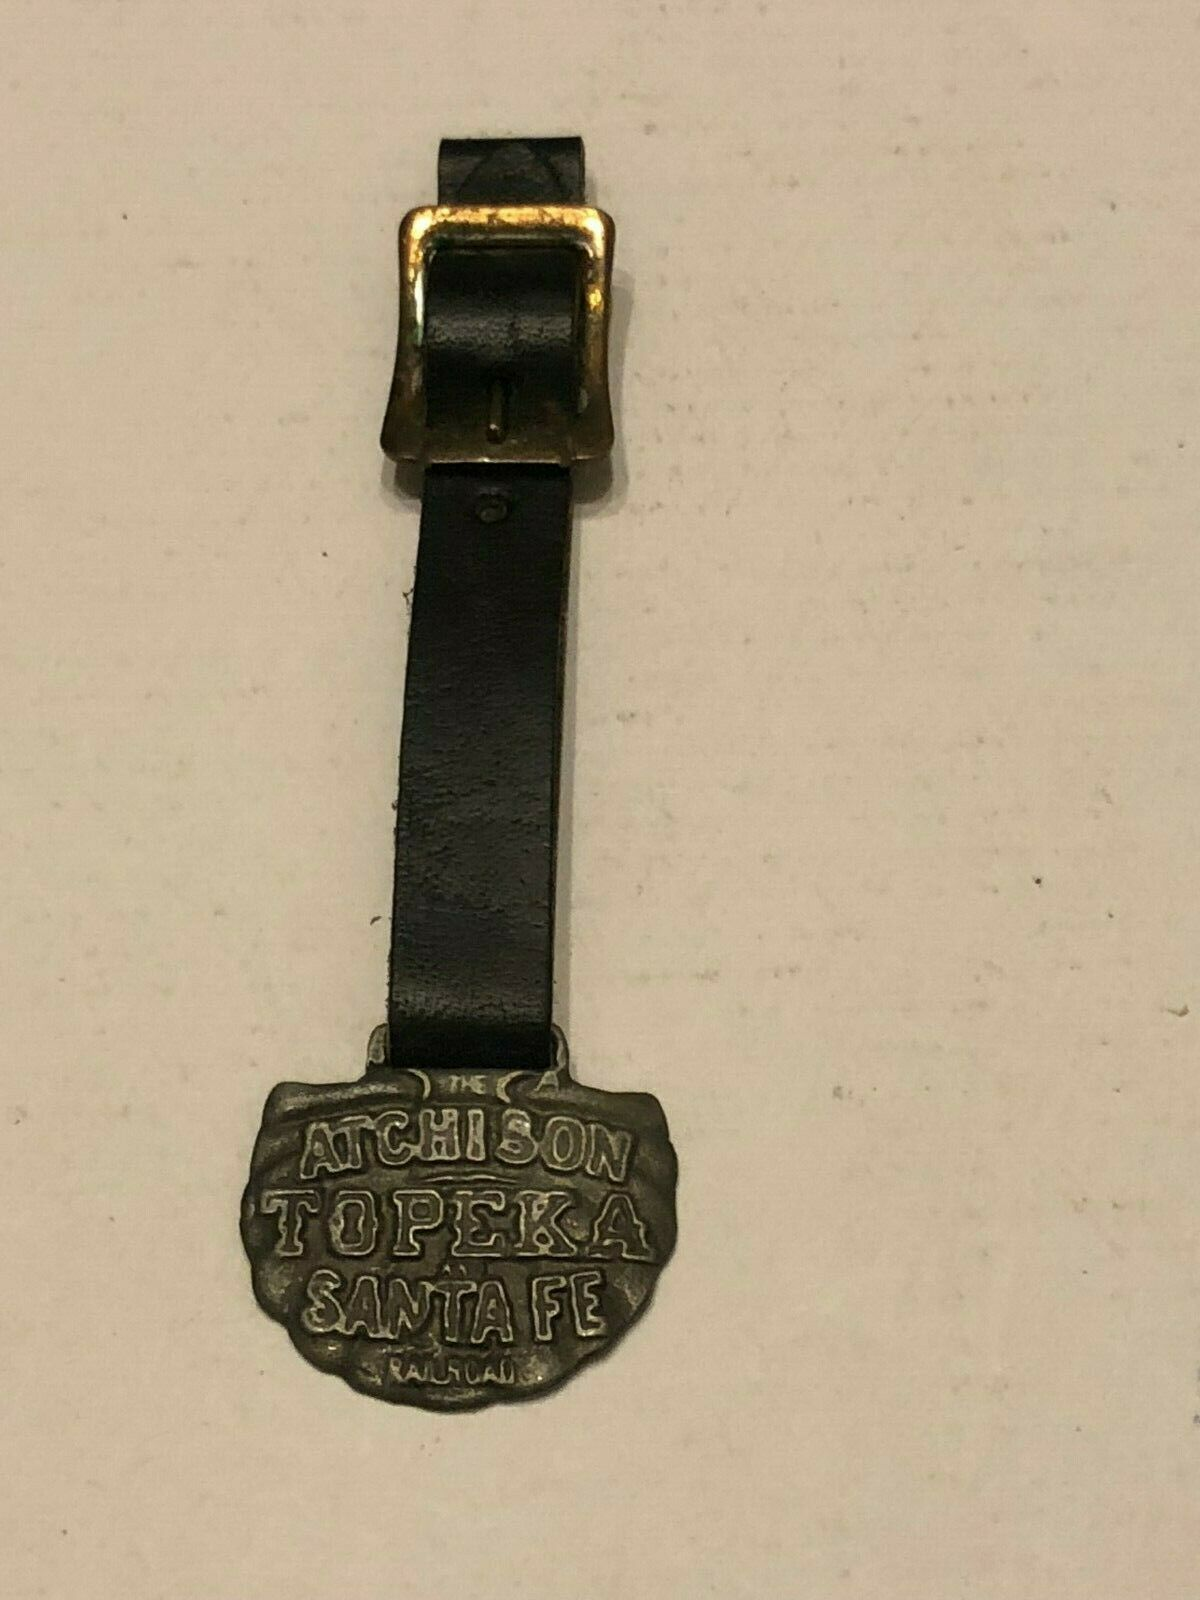 Vintage Watch Fob with Leather Strap - Atchison Topeka Santa Fee Railroad